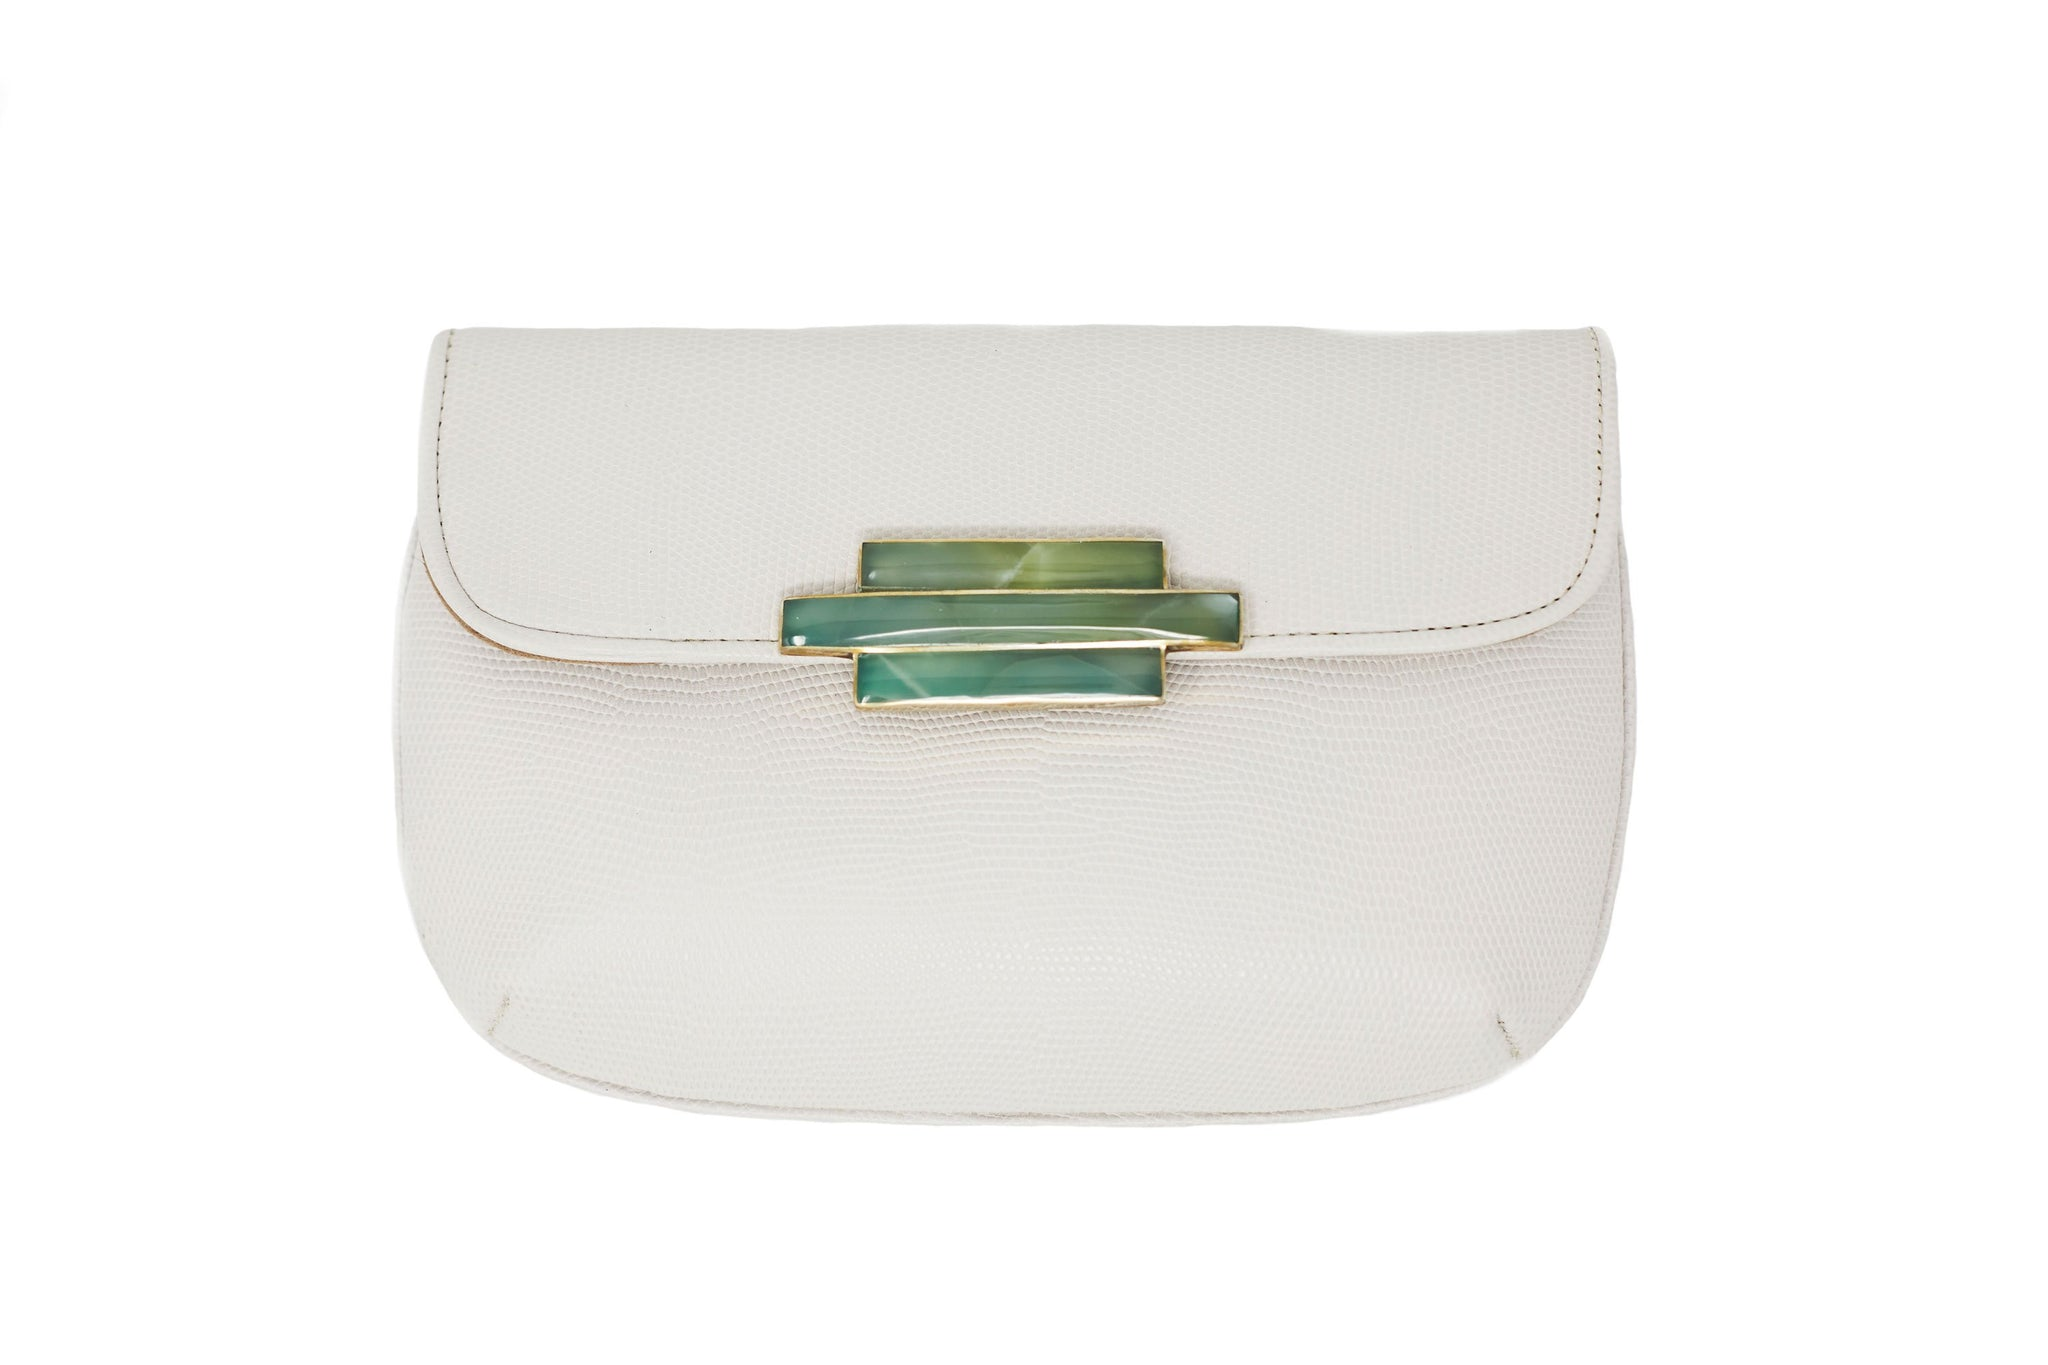 Bone Nite Leather Clutch Wristlet - Lesetta